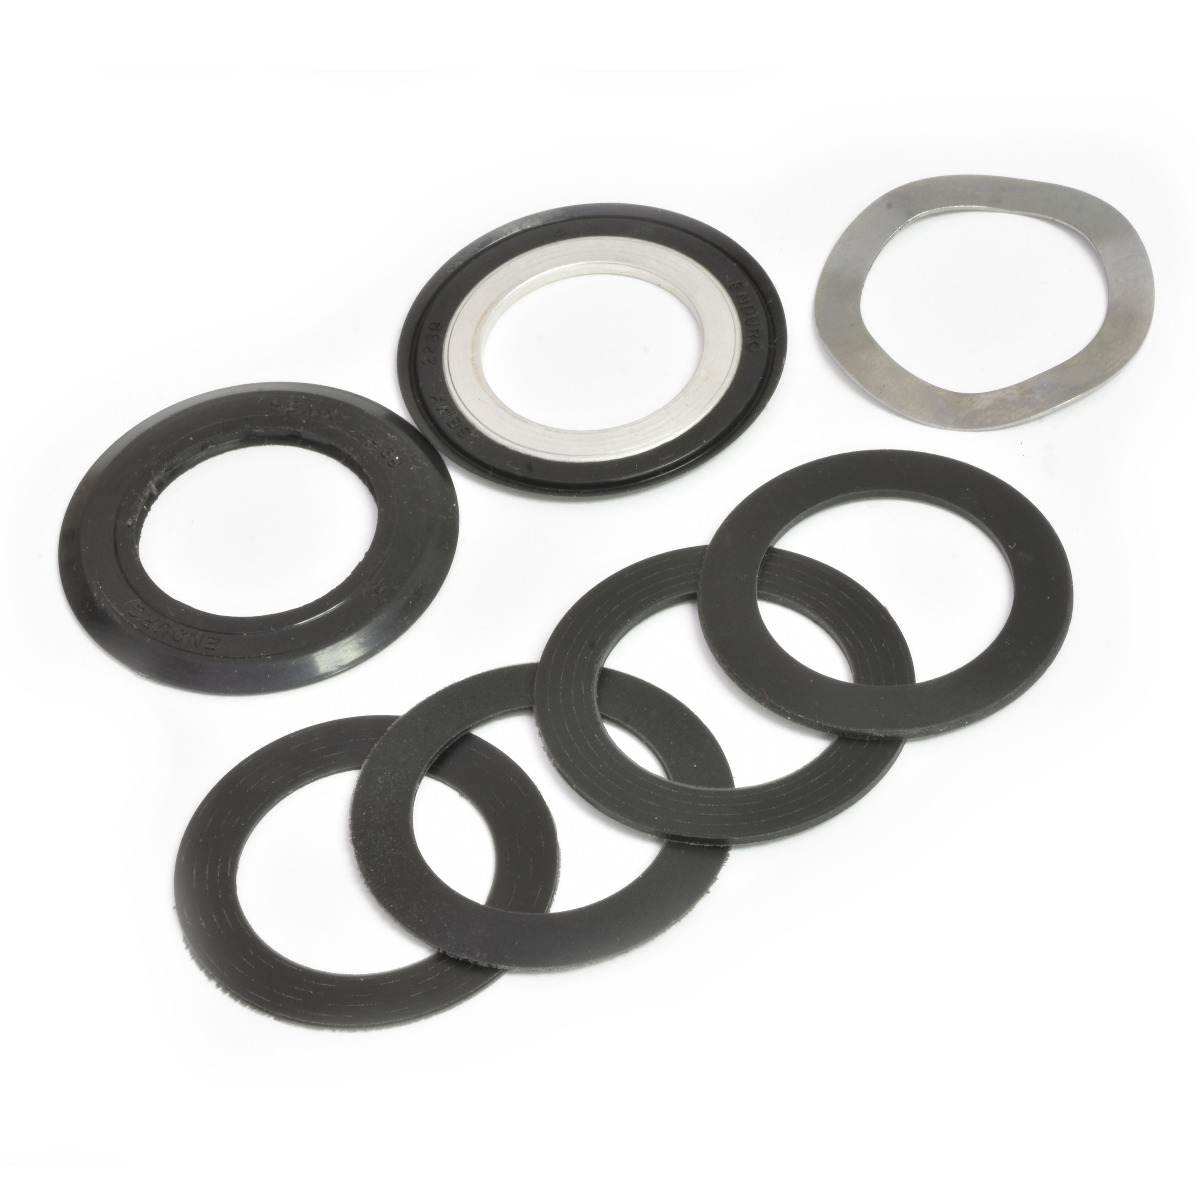 Wheels Manufacturing Inc. Repair Pack for 22/24mm (SRAM GPX) Bottom Brackets Color: Black